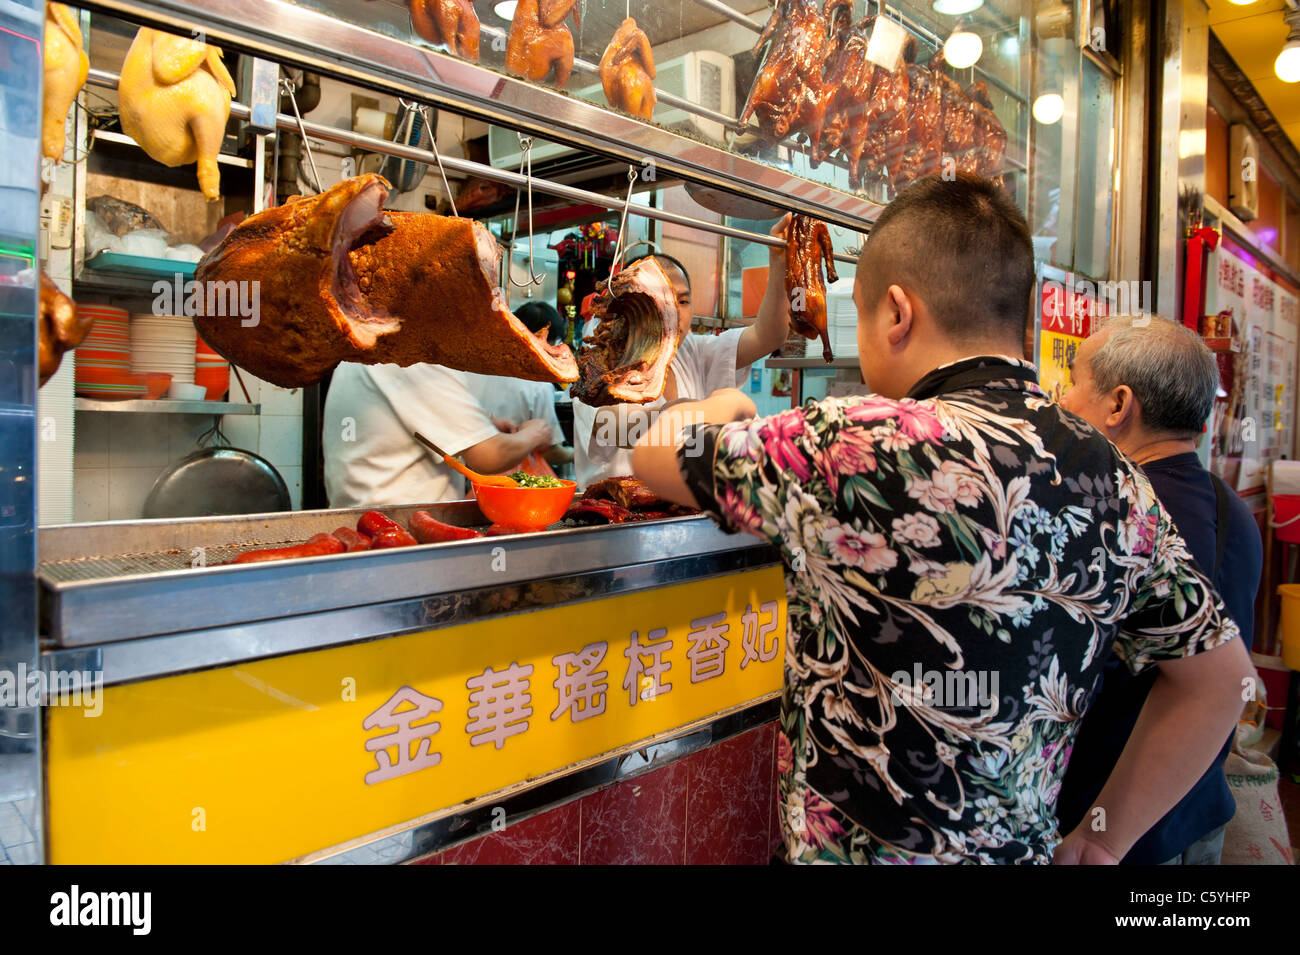 Street Food Vendor Selling Roast Duck, Barbecued Pork and Poultry in the Ladies Market Area, Tung Choi Street, Mong - Stock Image